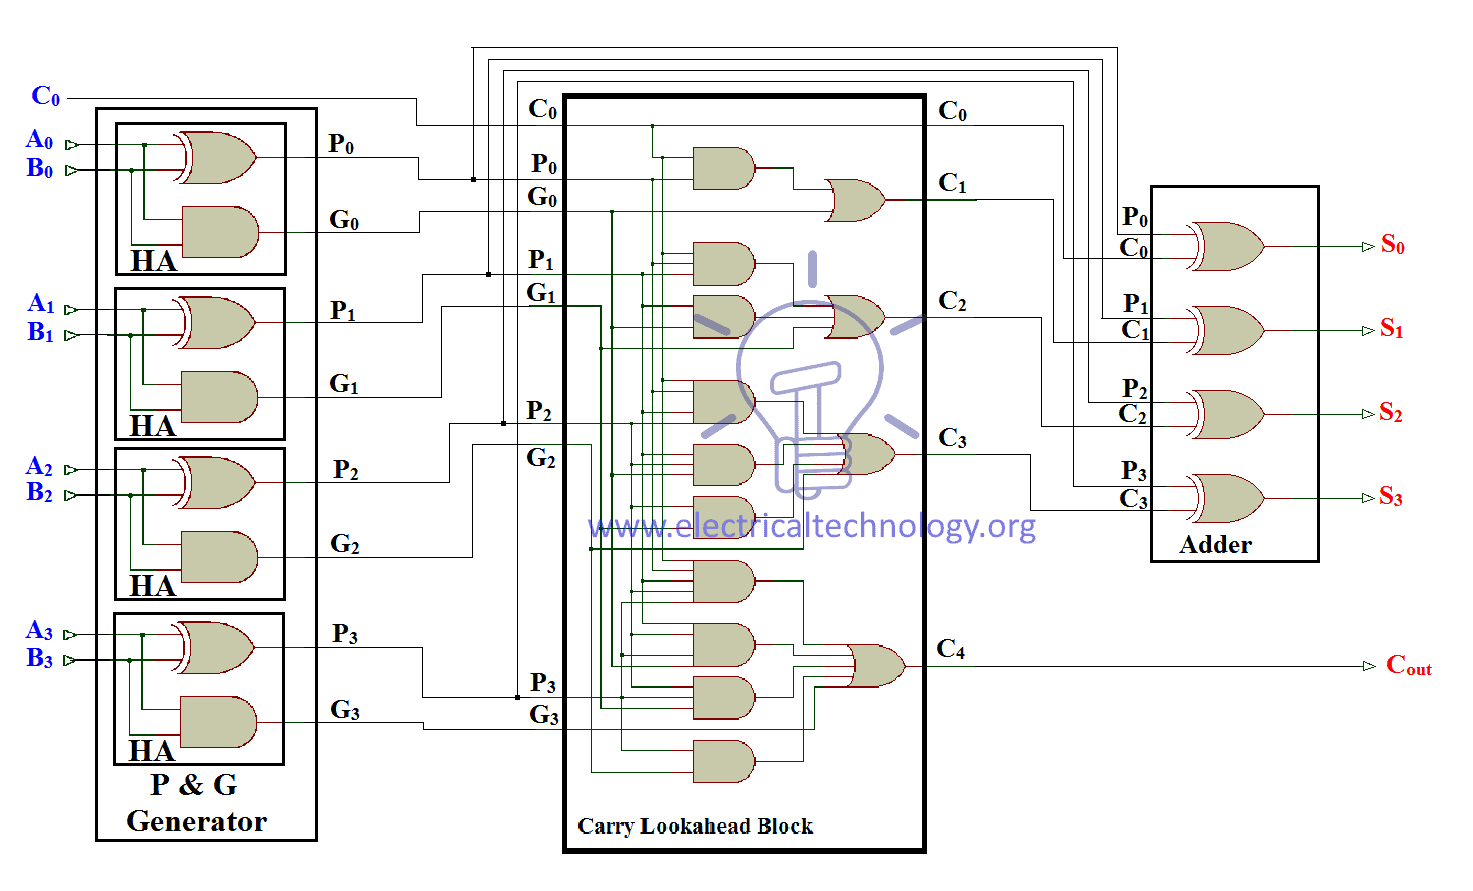 Ripple Carry And Look Ahead Adder Electrical Technology 4 Bit Logic Diagram Full Schematic Of